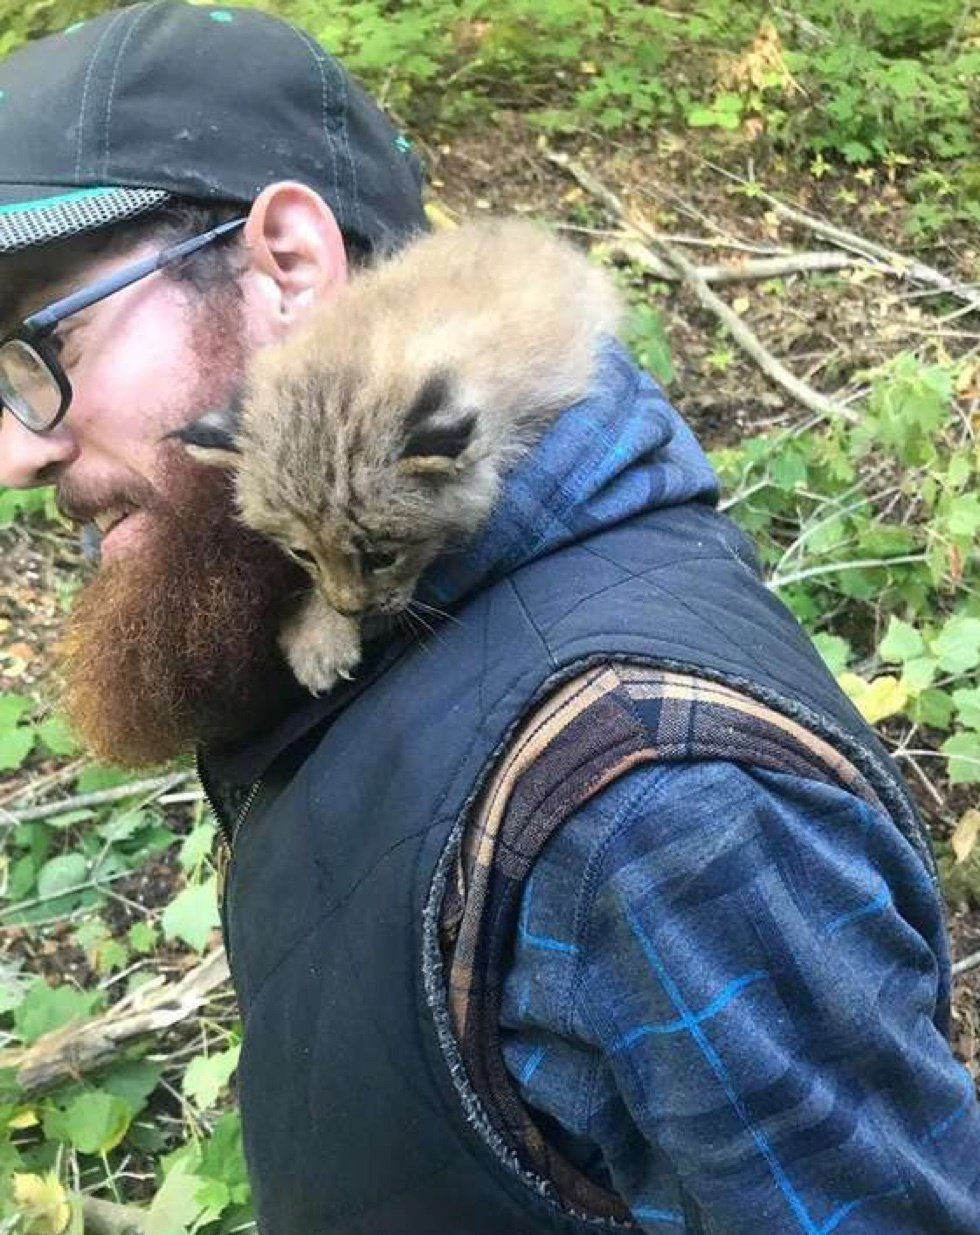 Man Saved What He Thought Was Kitten Until He Saw the Big Paws